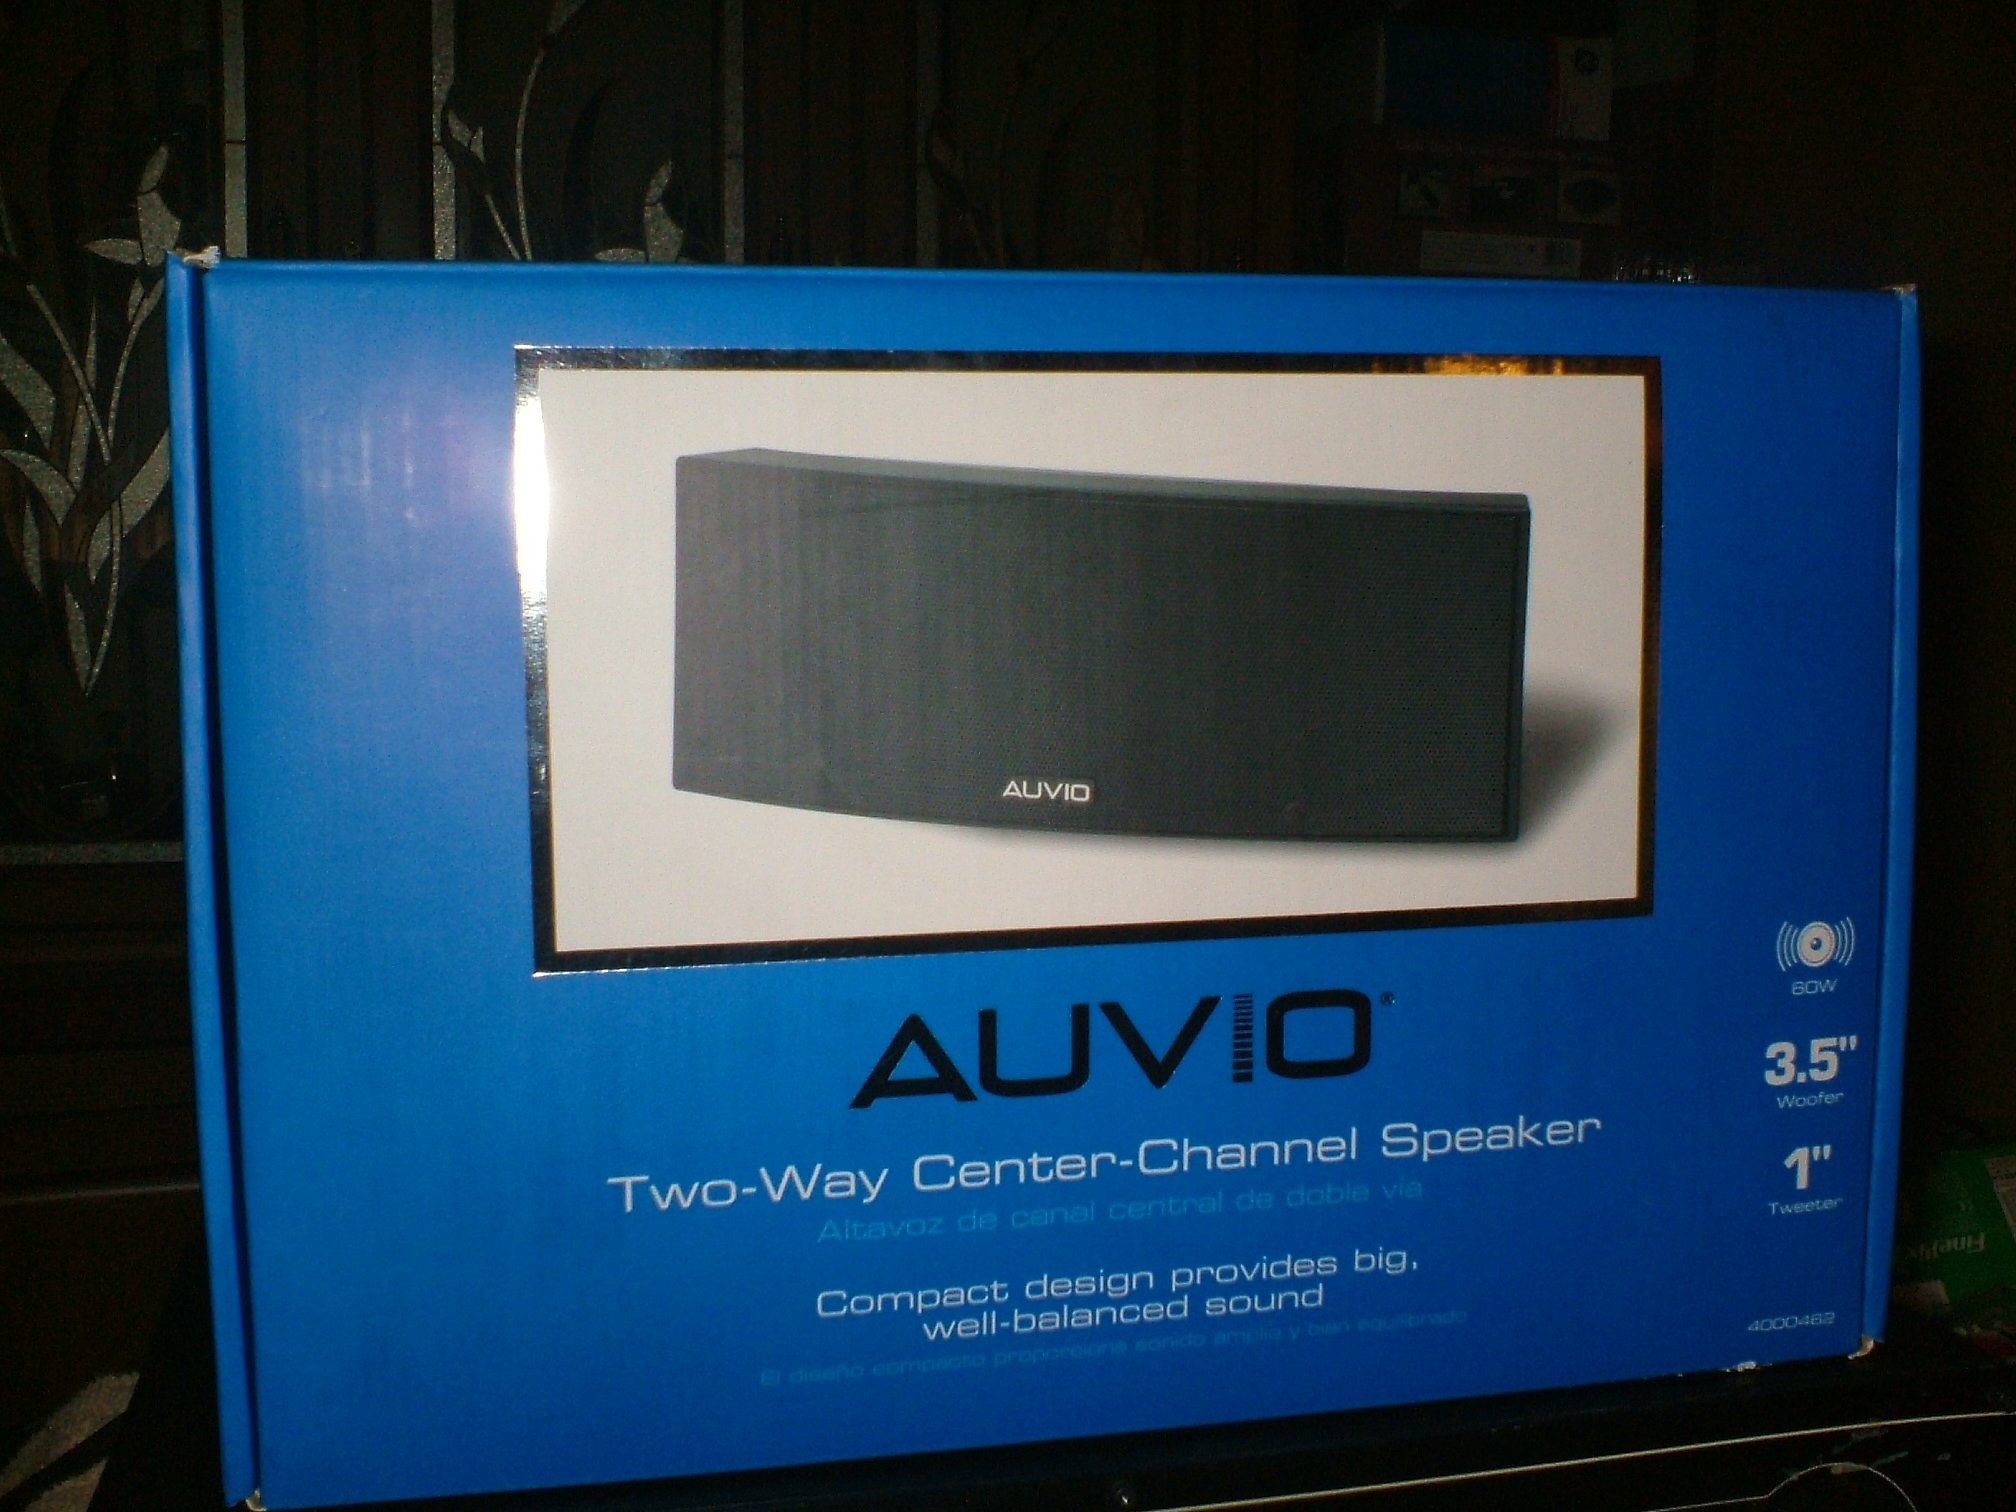 AUVIO 2-Way Center-Channel Speaker